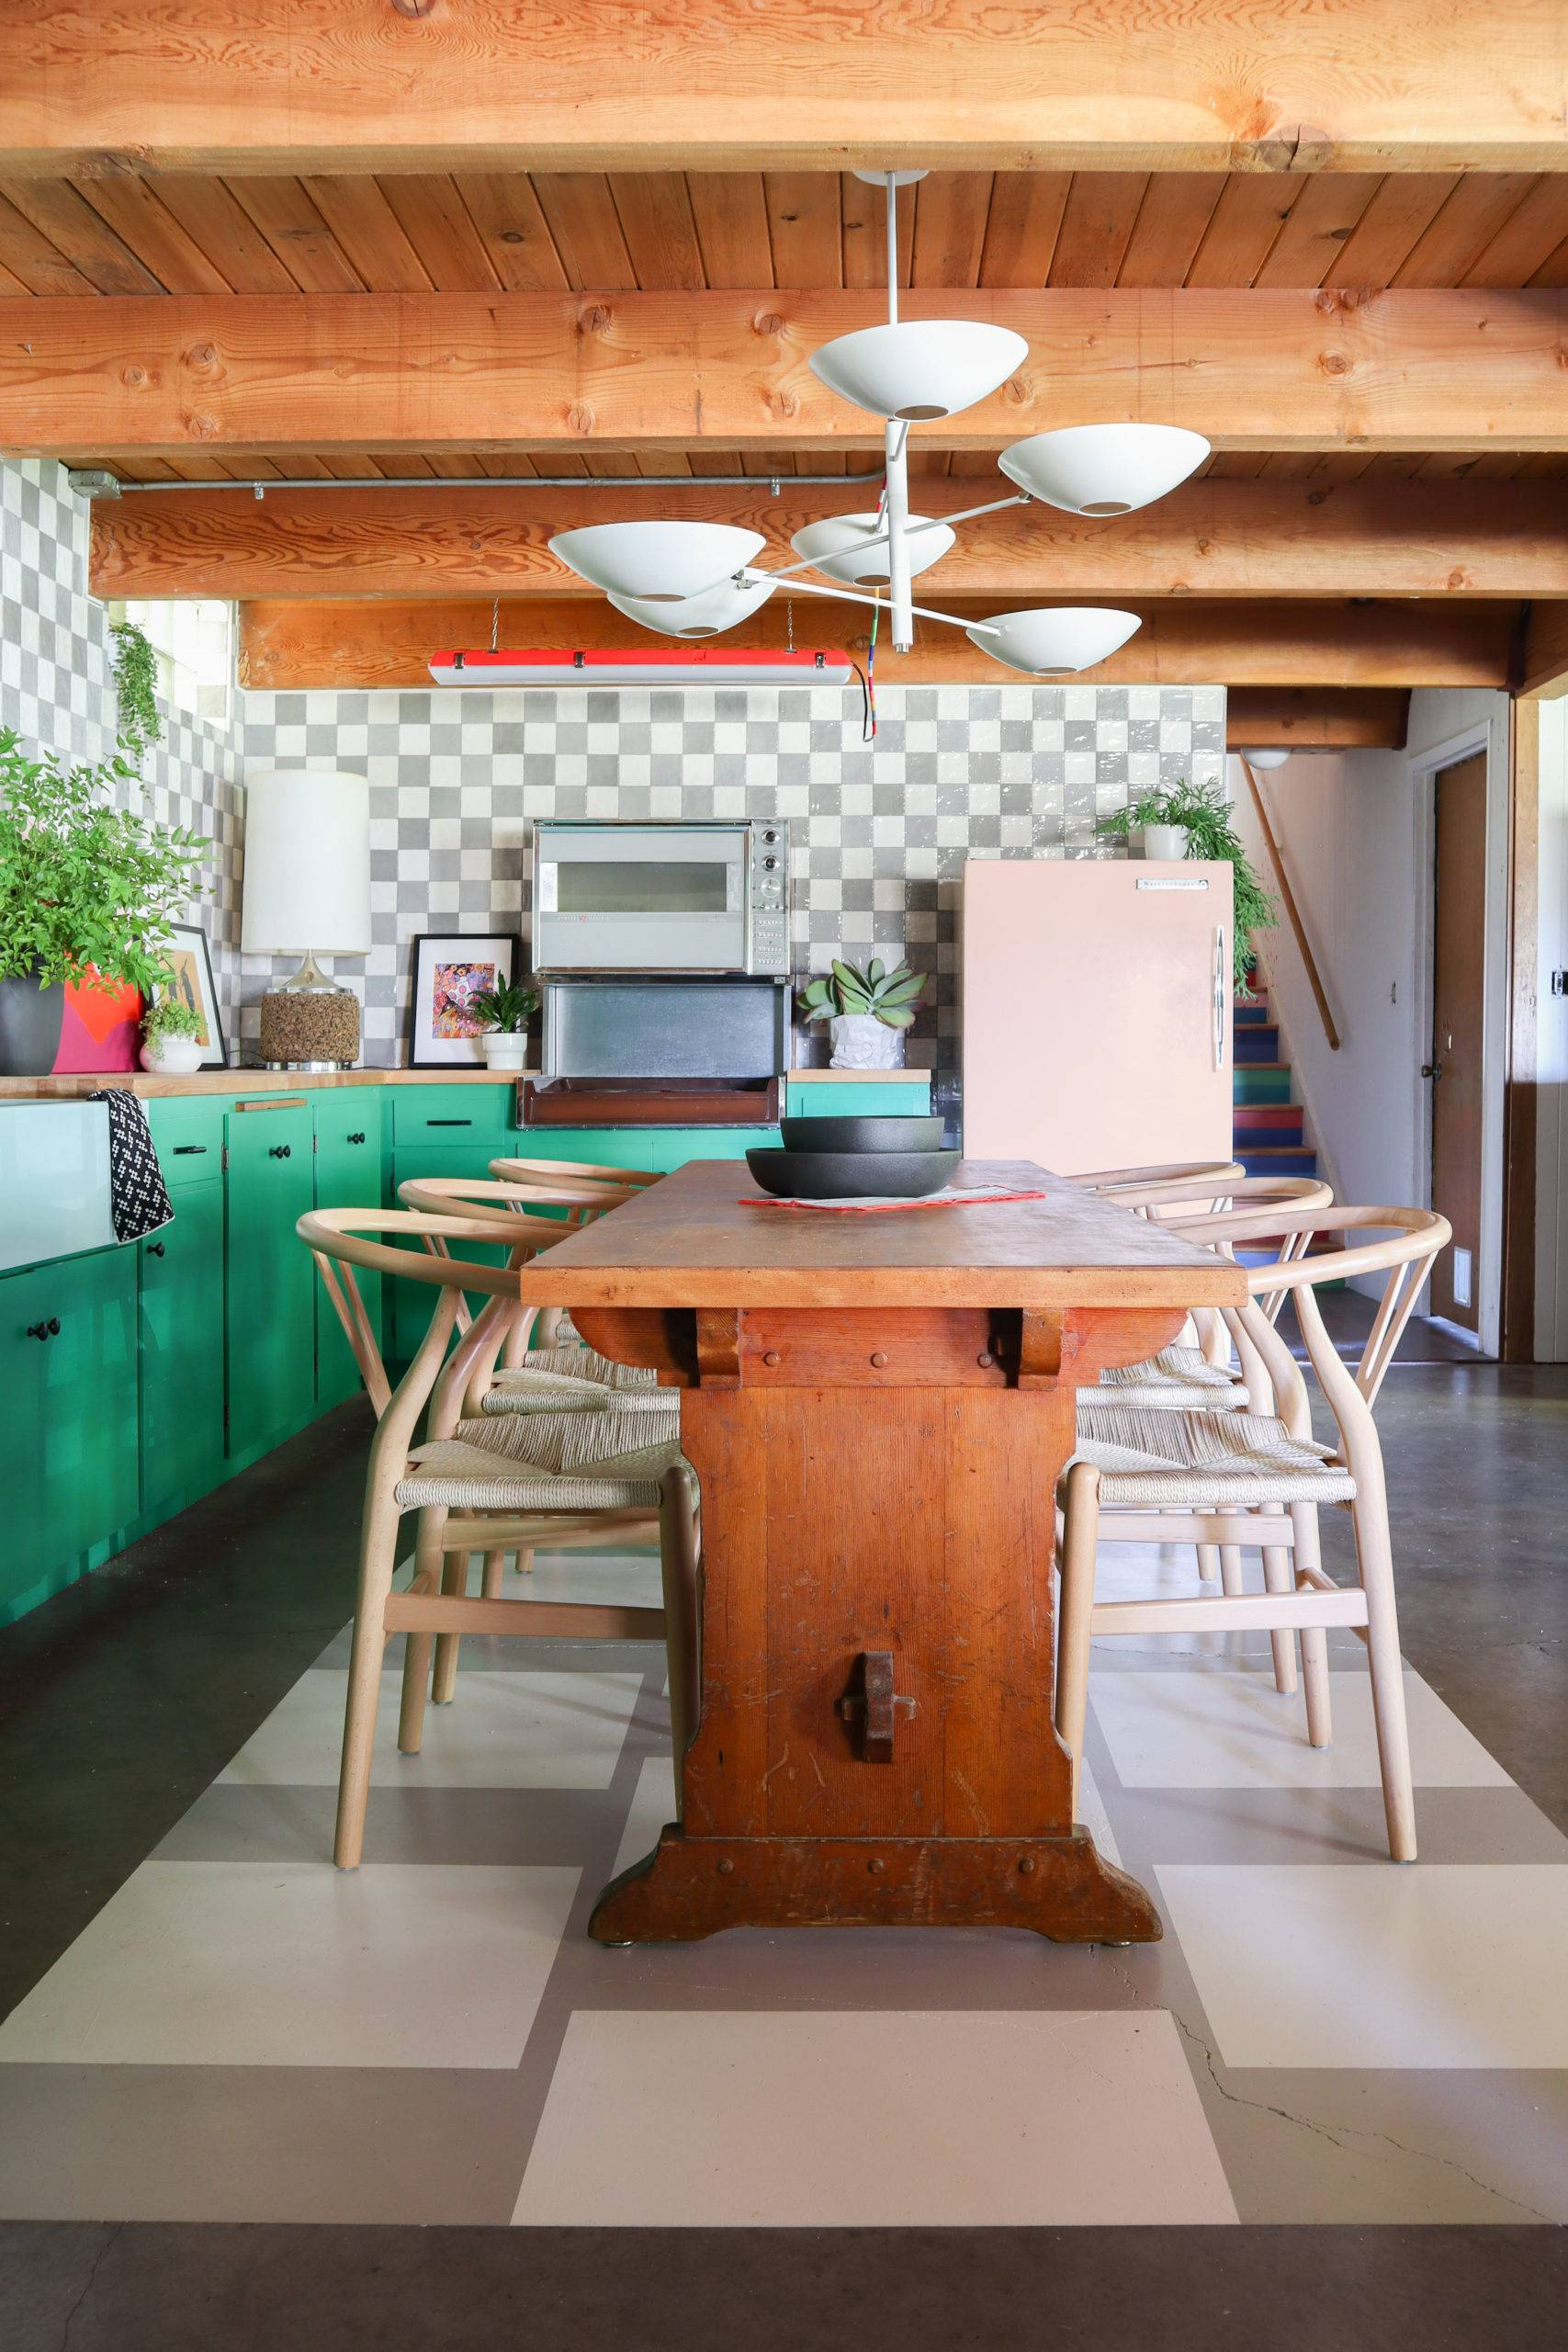 colorful kitchen and dining space with checkerboard tiled backsplash and green cabinets